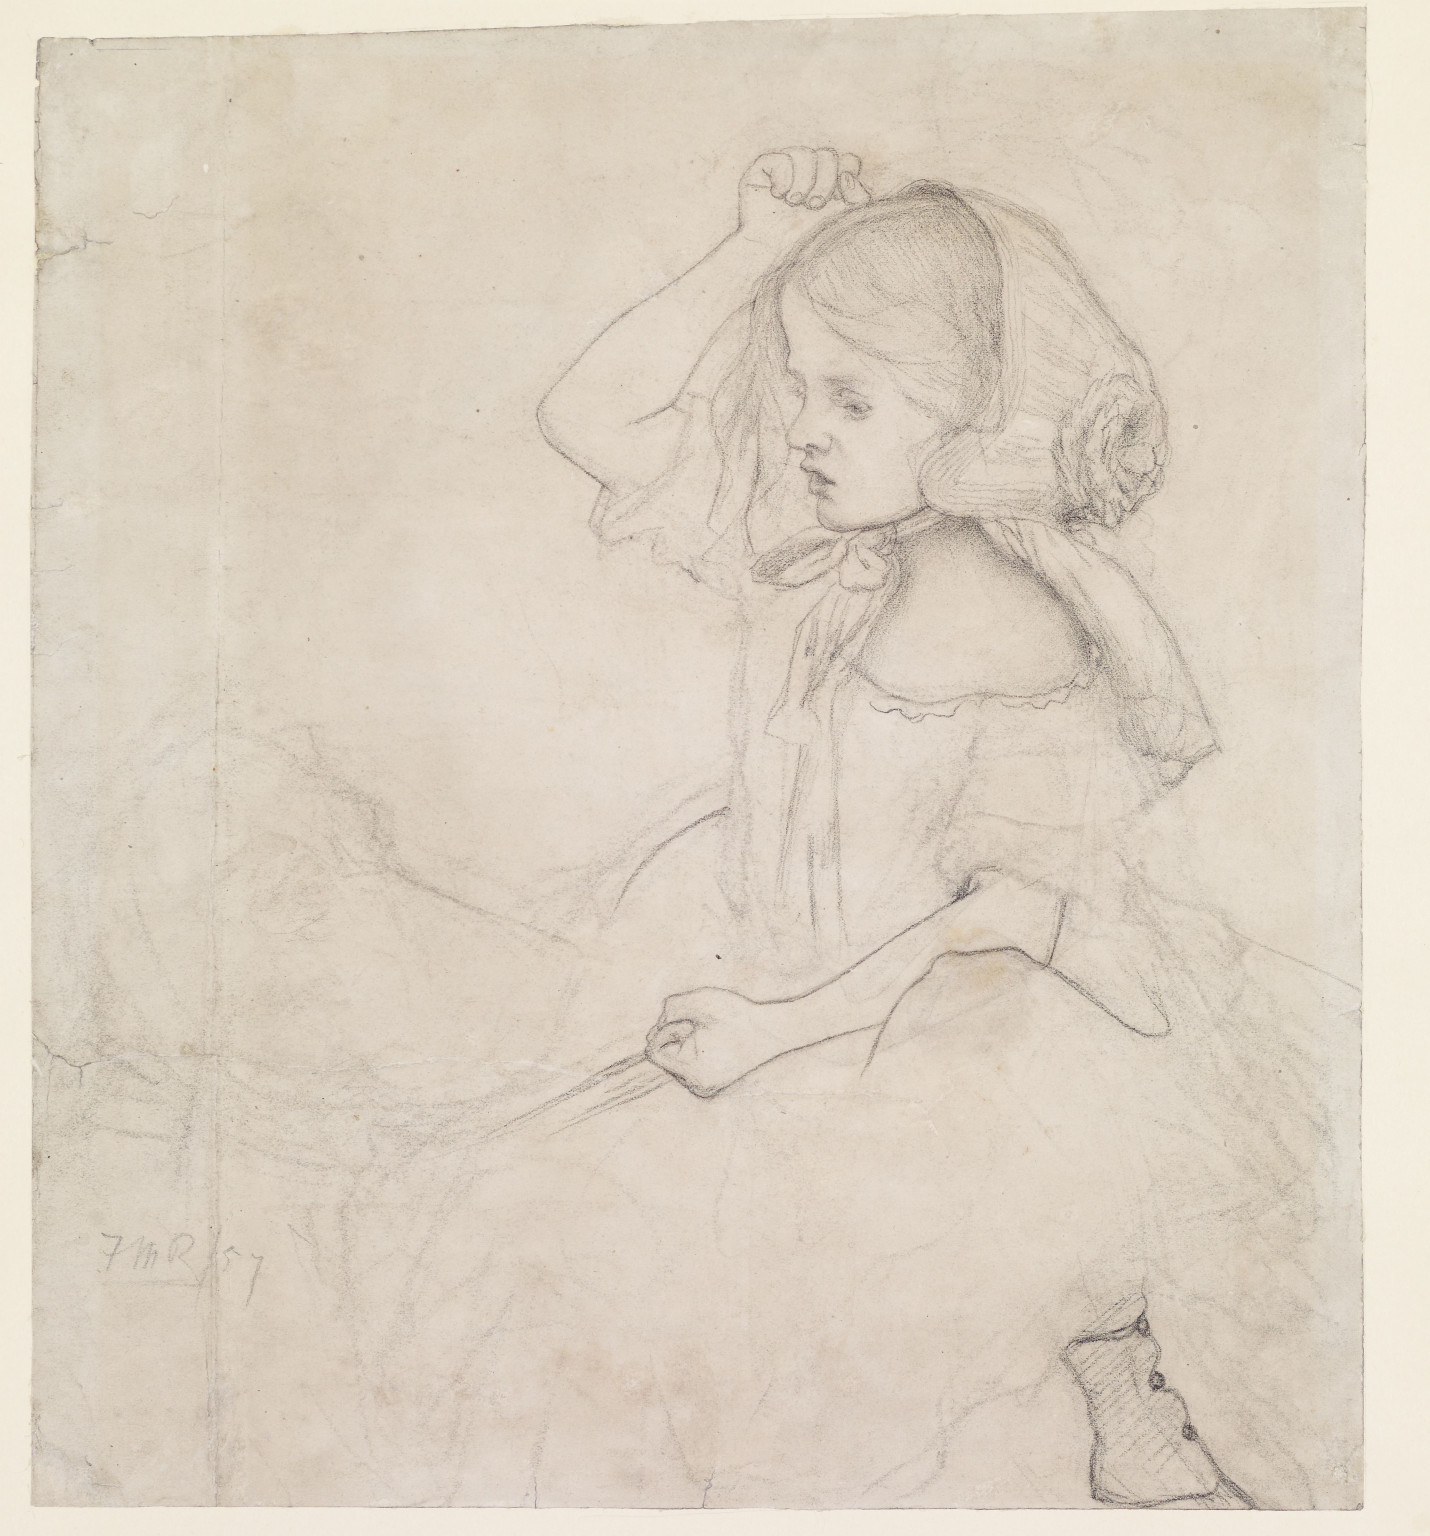 Ford Madox Brown, Stages of Cruelty - Study for the Child (Catherine Madox Brown), 1857, Chalk on paper, Birmingham Museums Trust. Photo by Birmingham Museums Trust, licensed under CC0